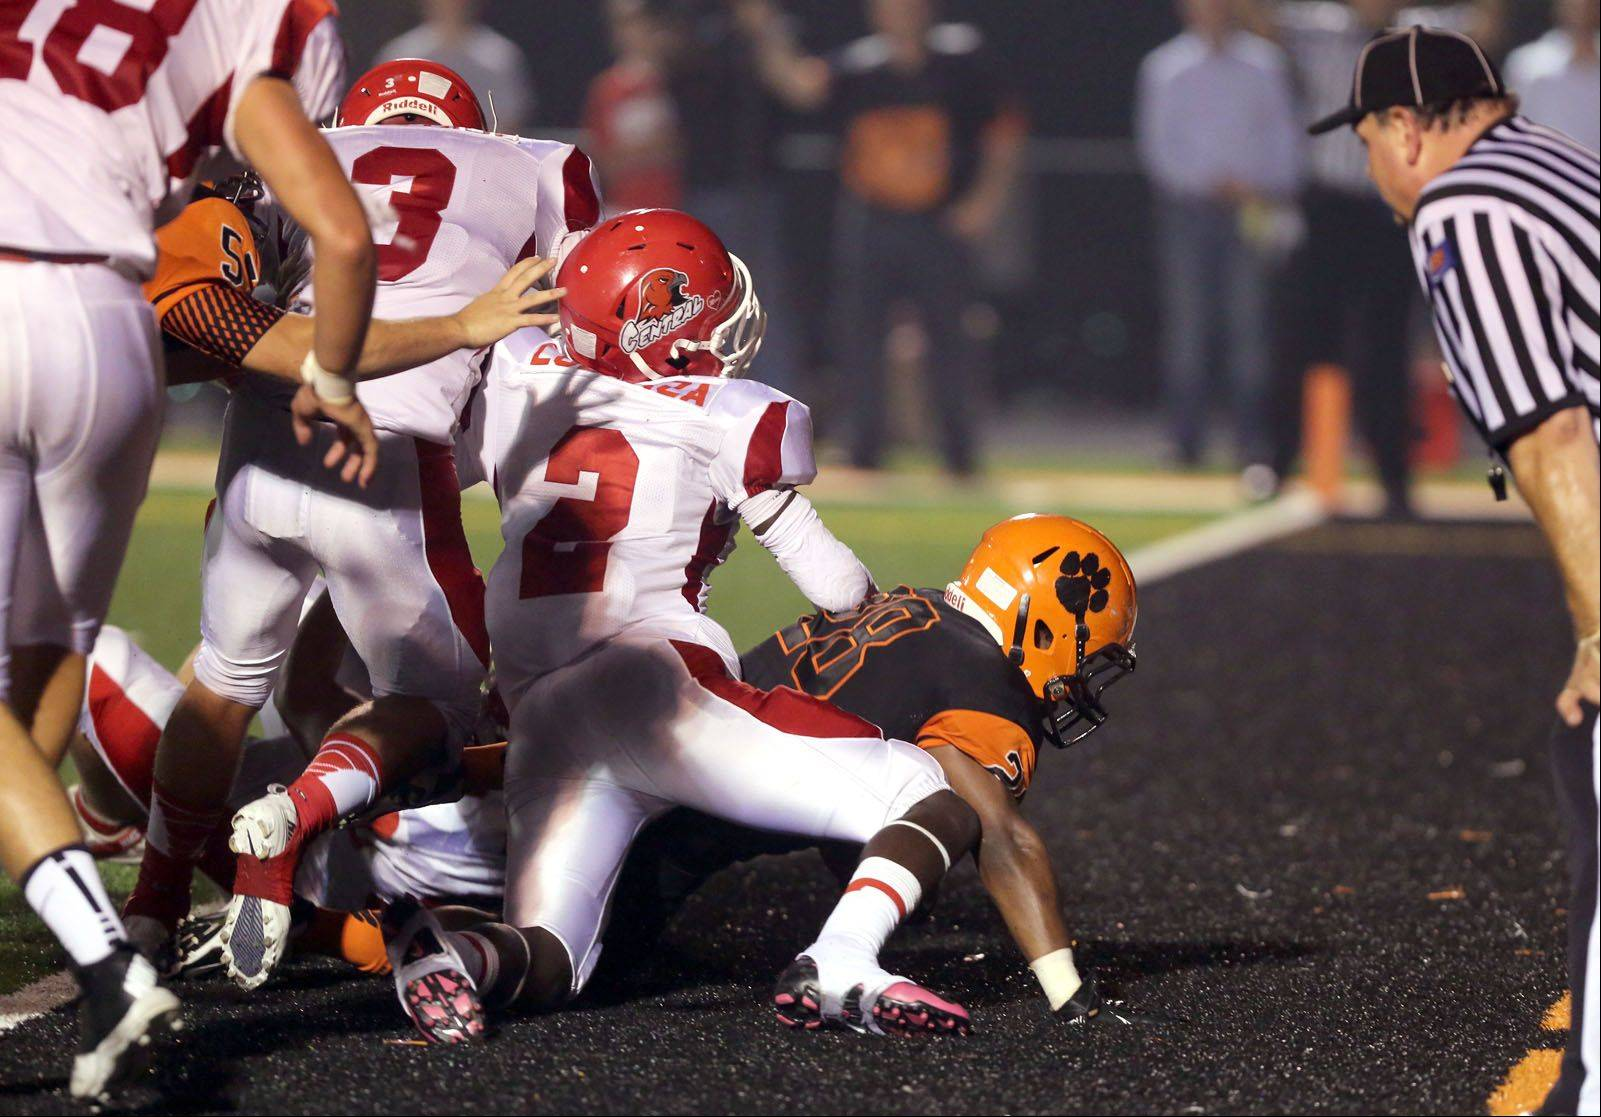 Wheaton Warrenville South's Isaiah Campos scores a first-half touchdown against Naperville Central.